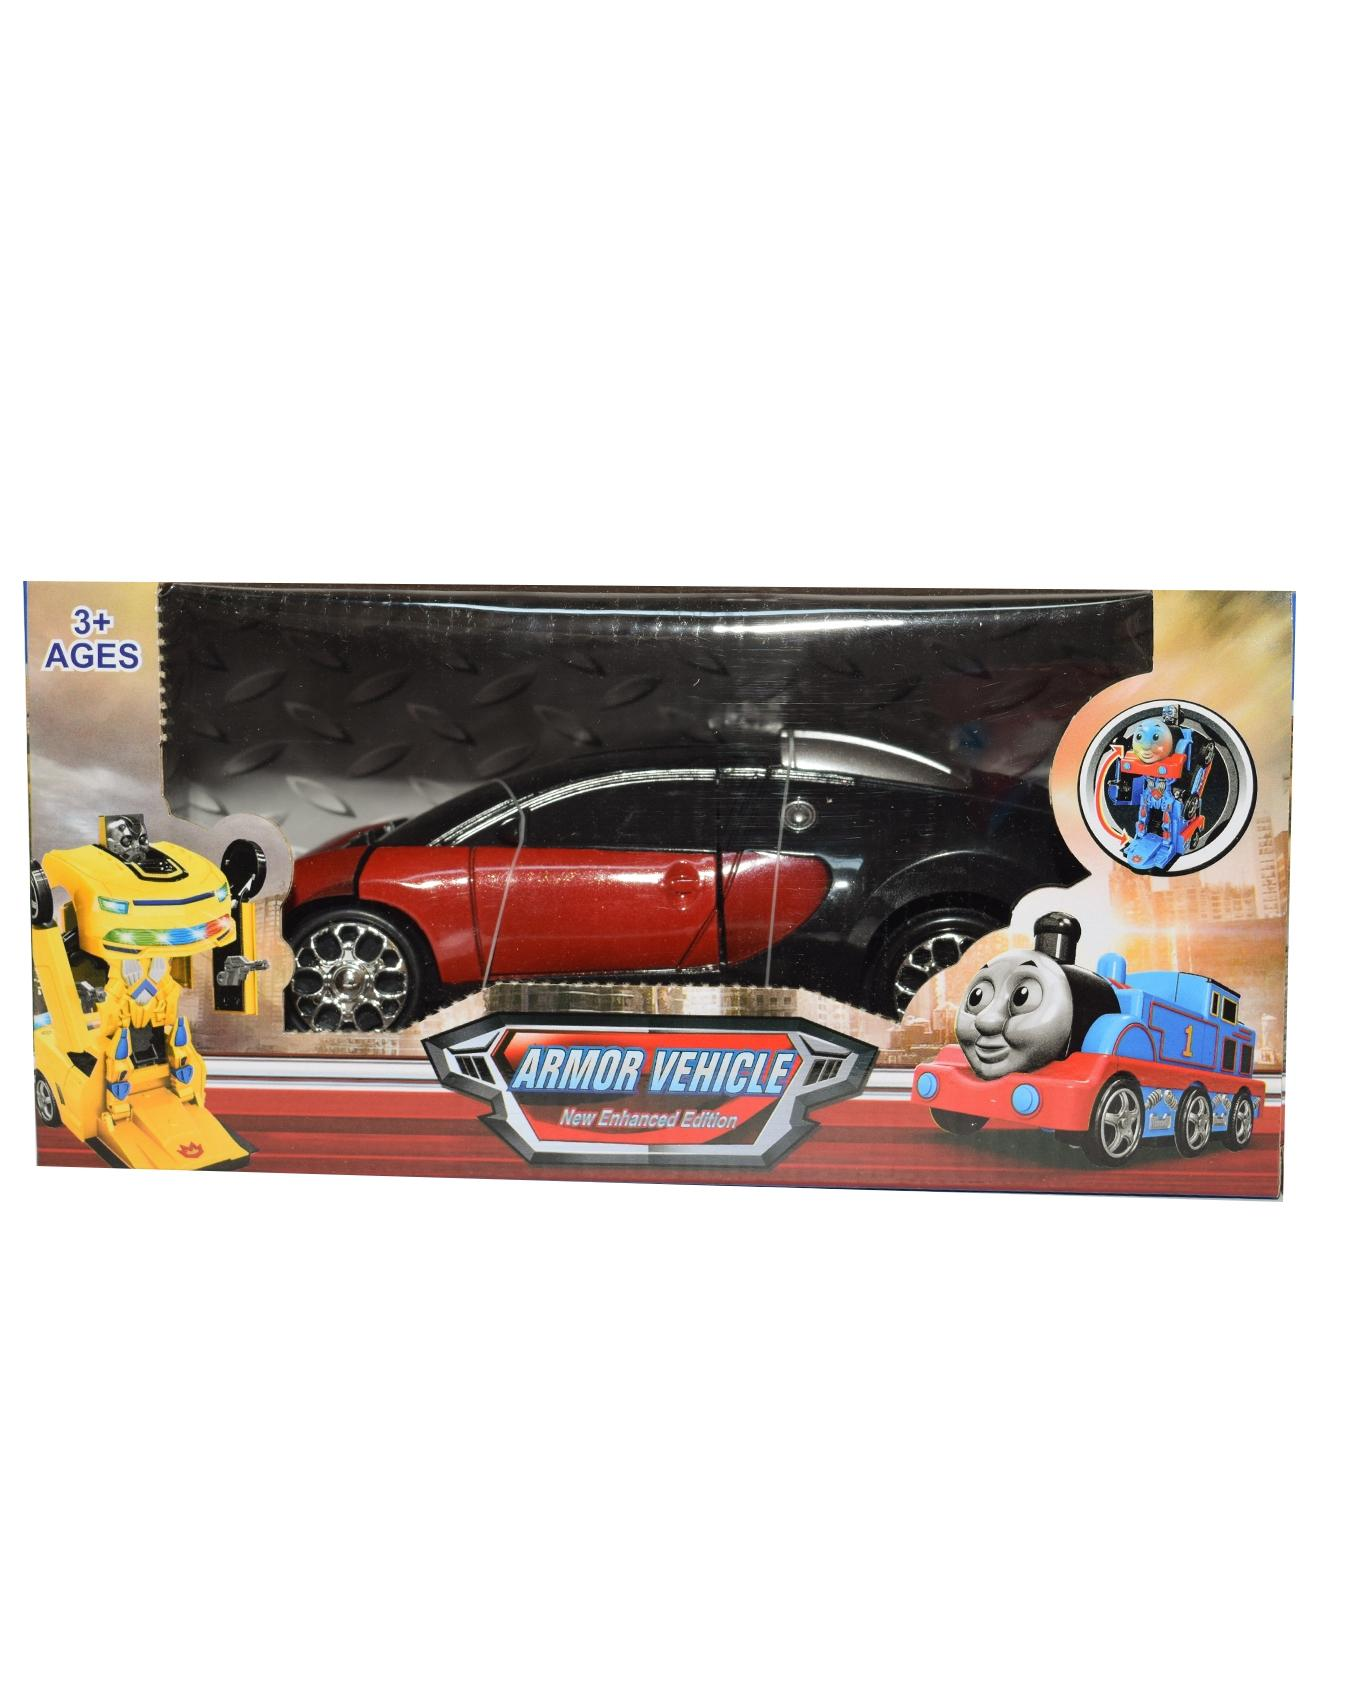 Toy Cars 5 - Blue and black